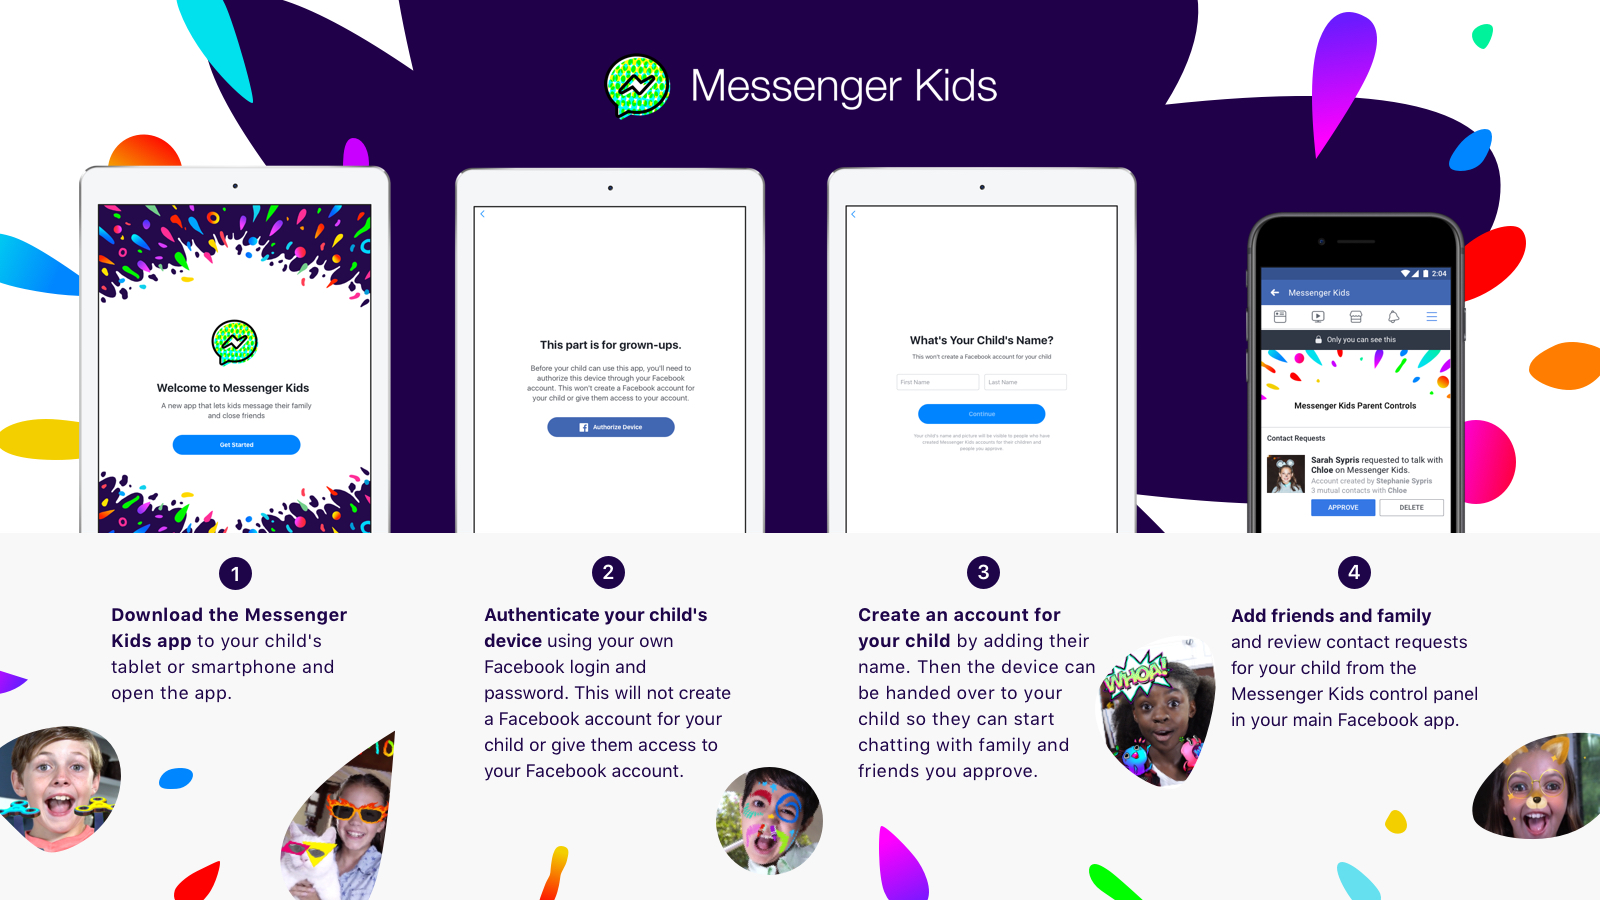 Facebook Launches Messenger Kids With Strict Parental Controls For Children Under 13